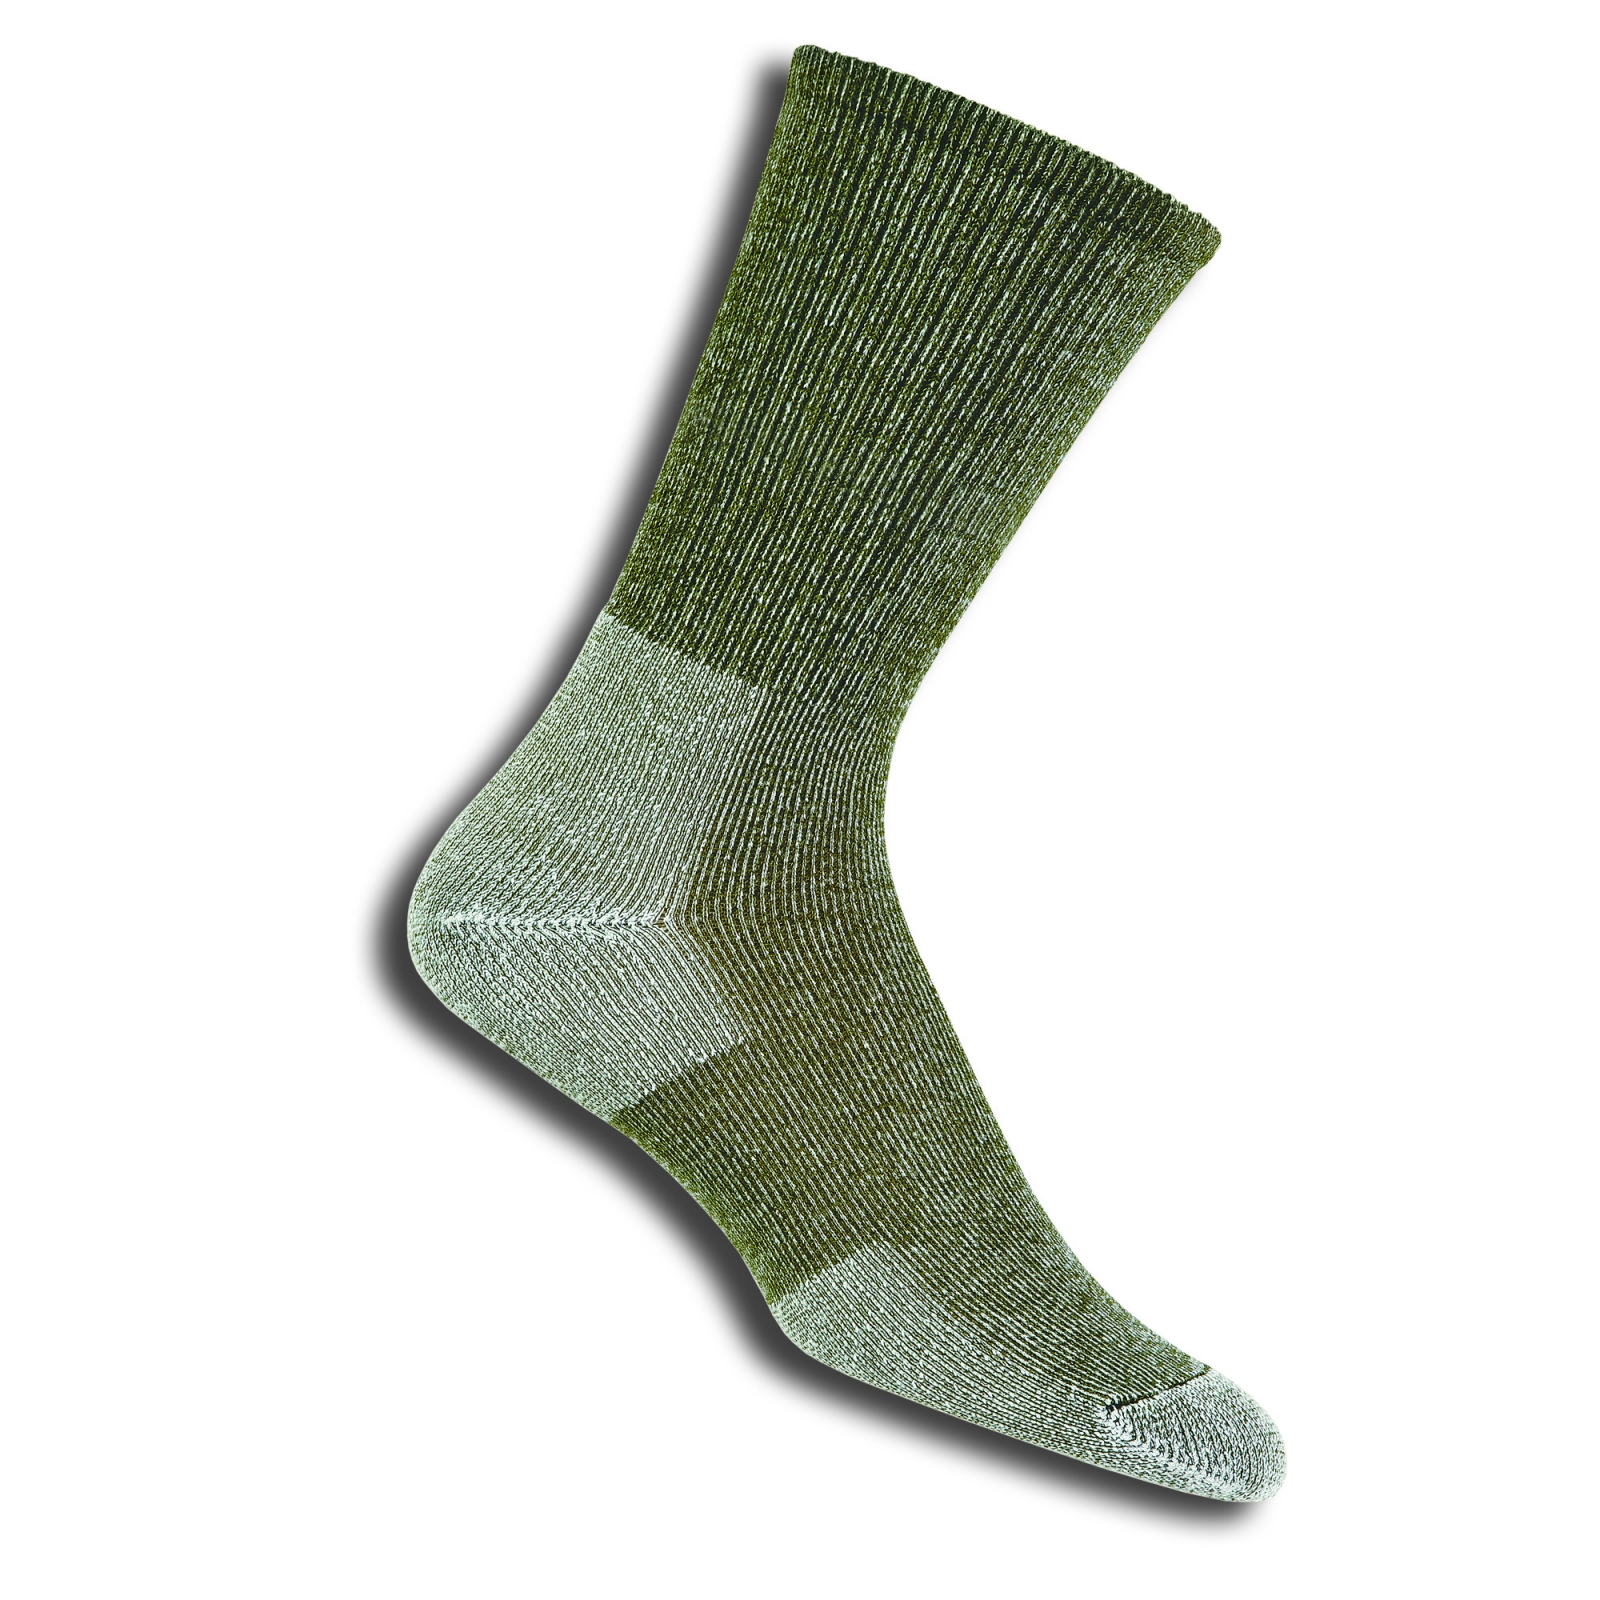 ULHX Ultra Light Hiking Socks Crew